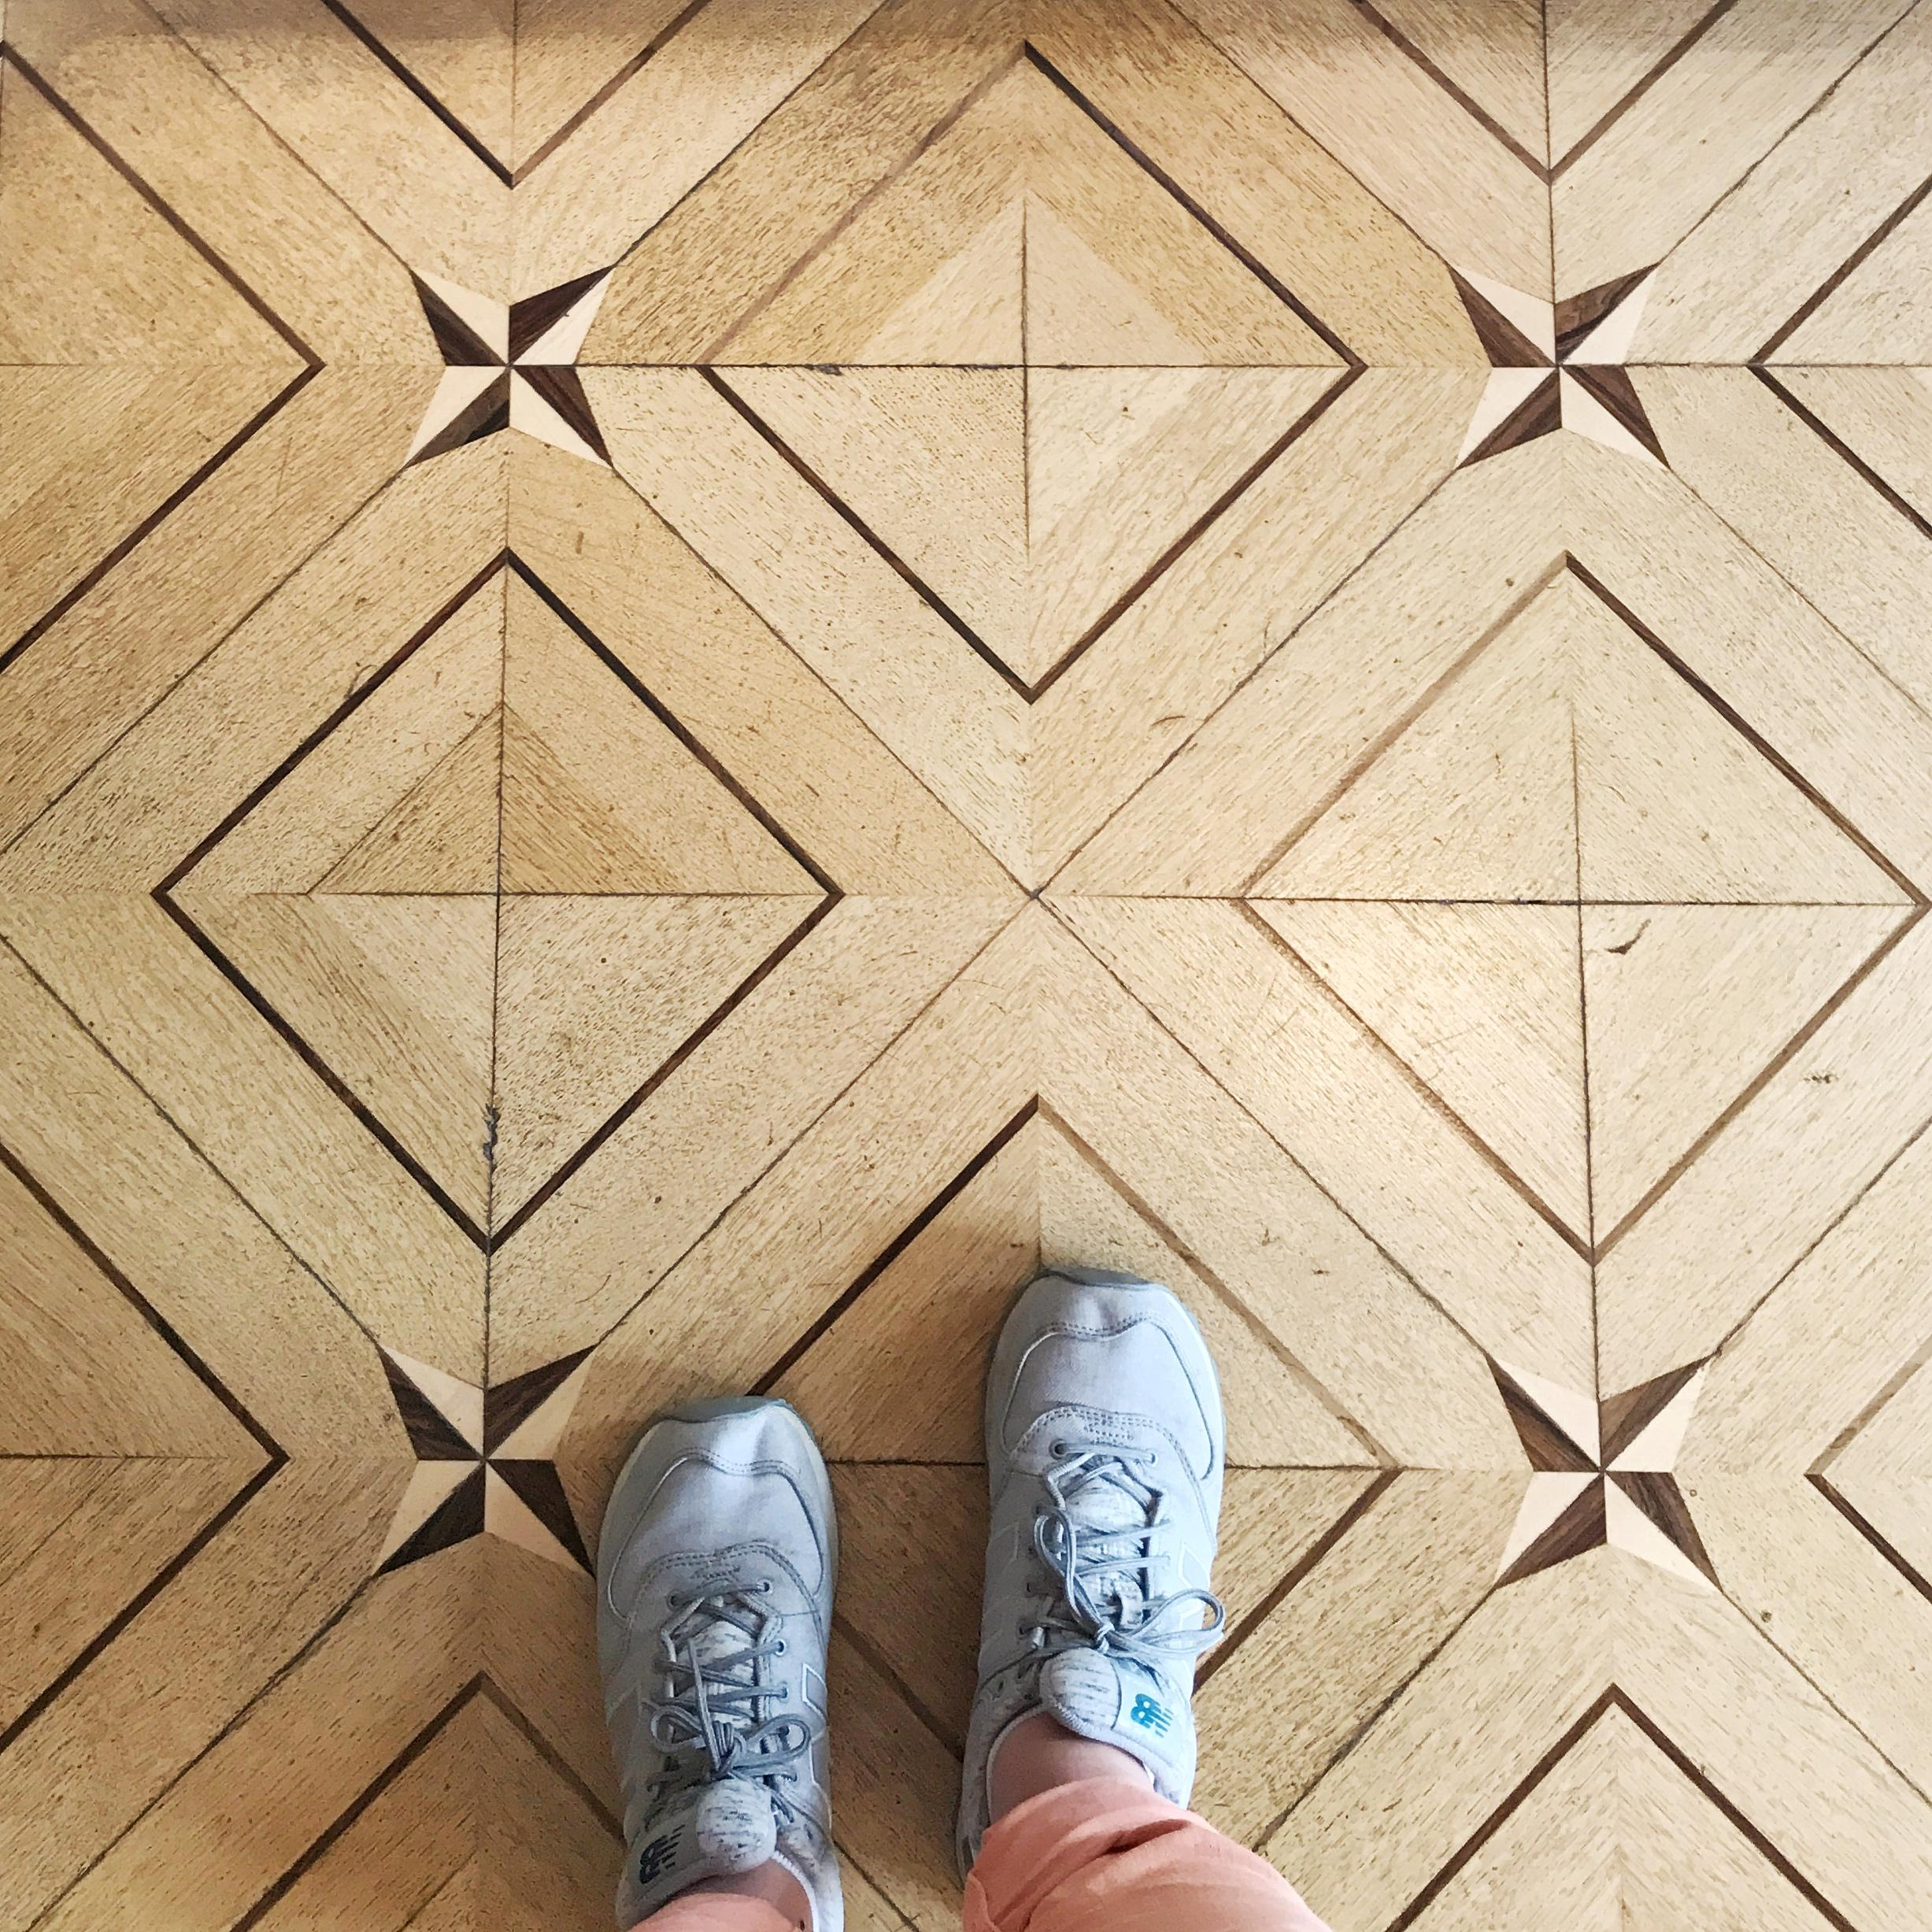 #patternlove #holzboden #altbau